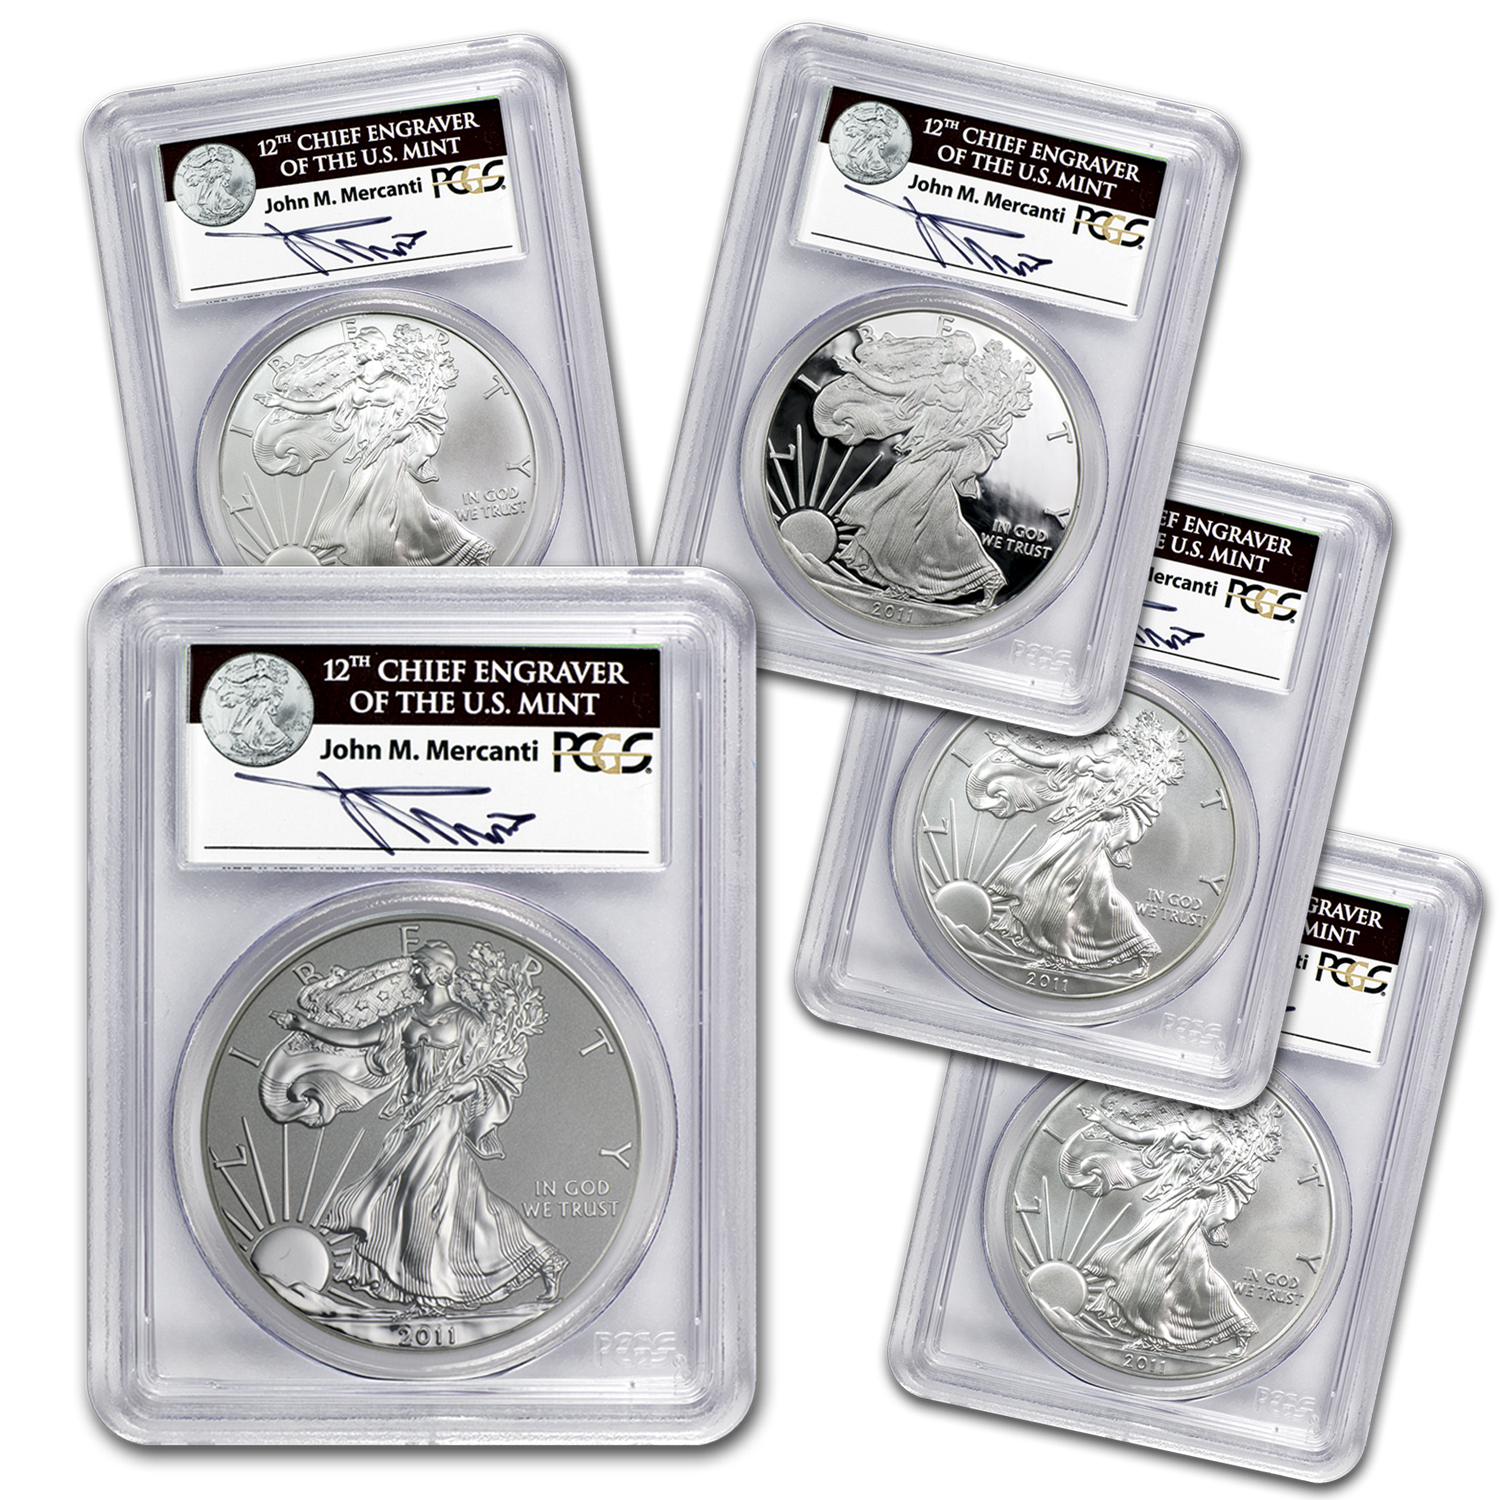 2011 5-Coin Silver Eagle Set MS/PR-69 PCGS (25th, John Mercanti)